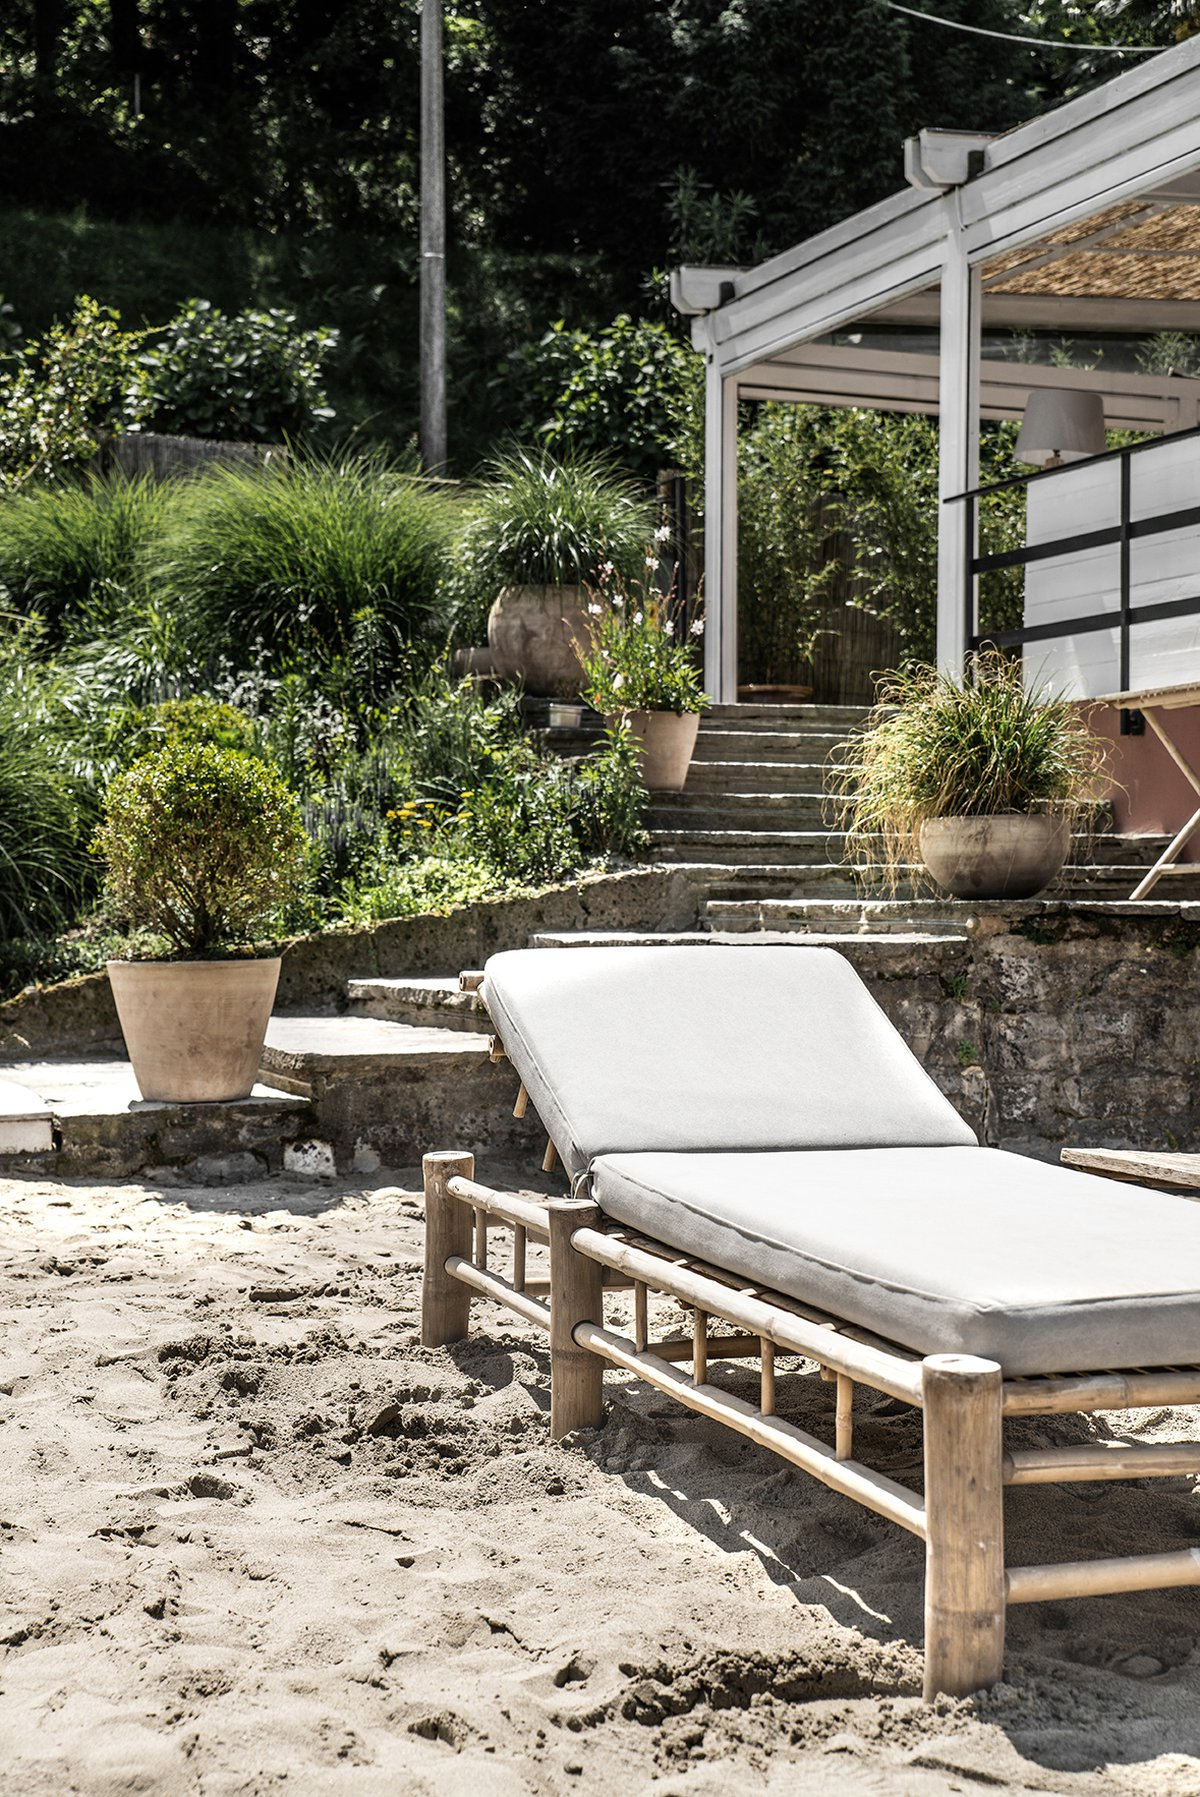 Lido Di Lenno beach bar at Lake Como, Italy decorated with tinekhome bambed with grey cushion